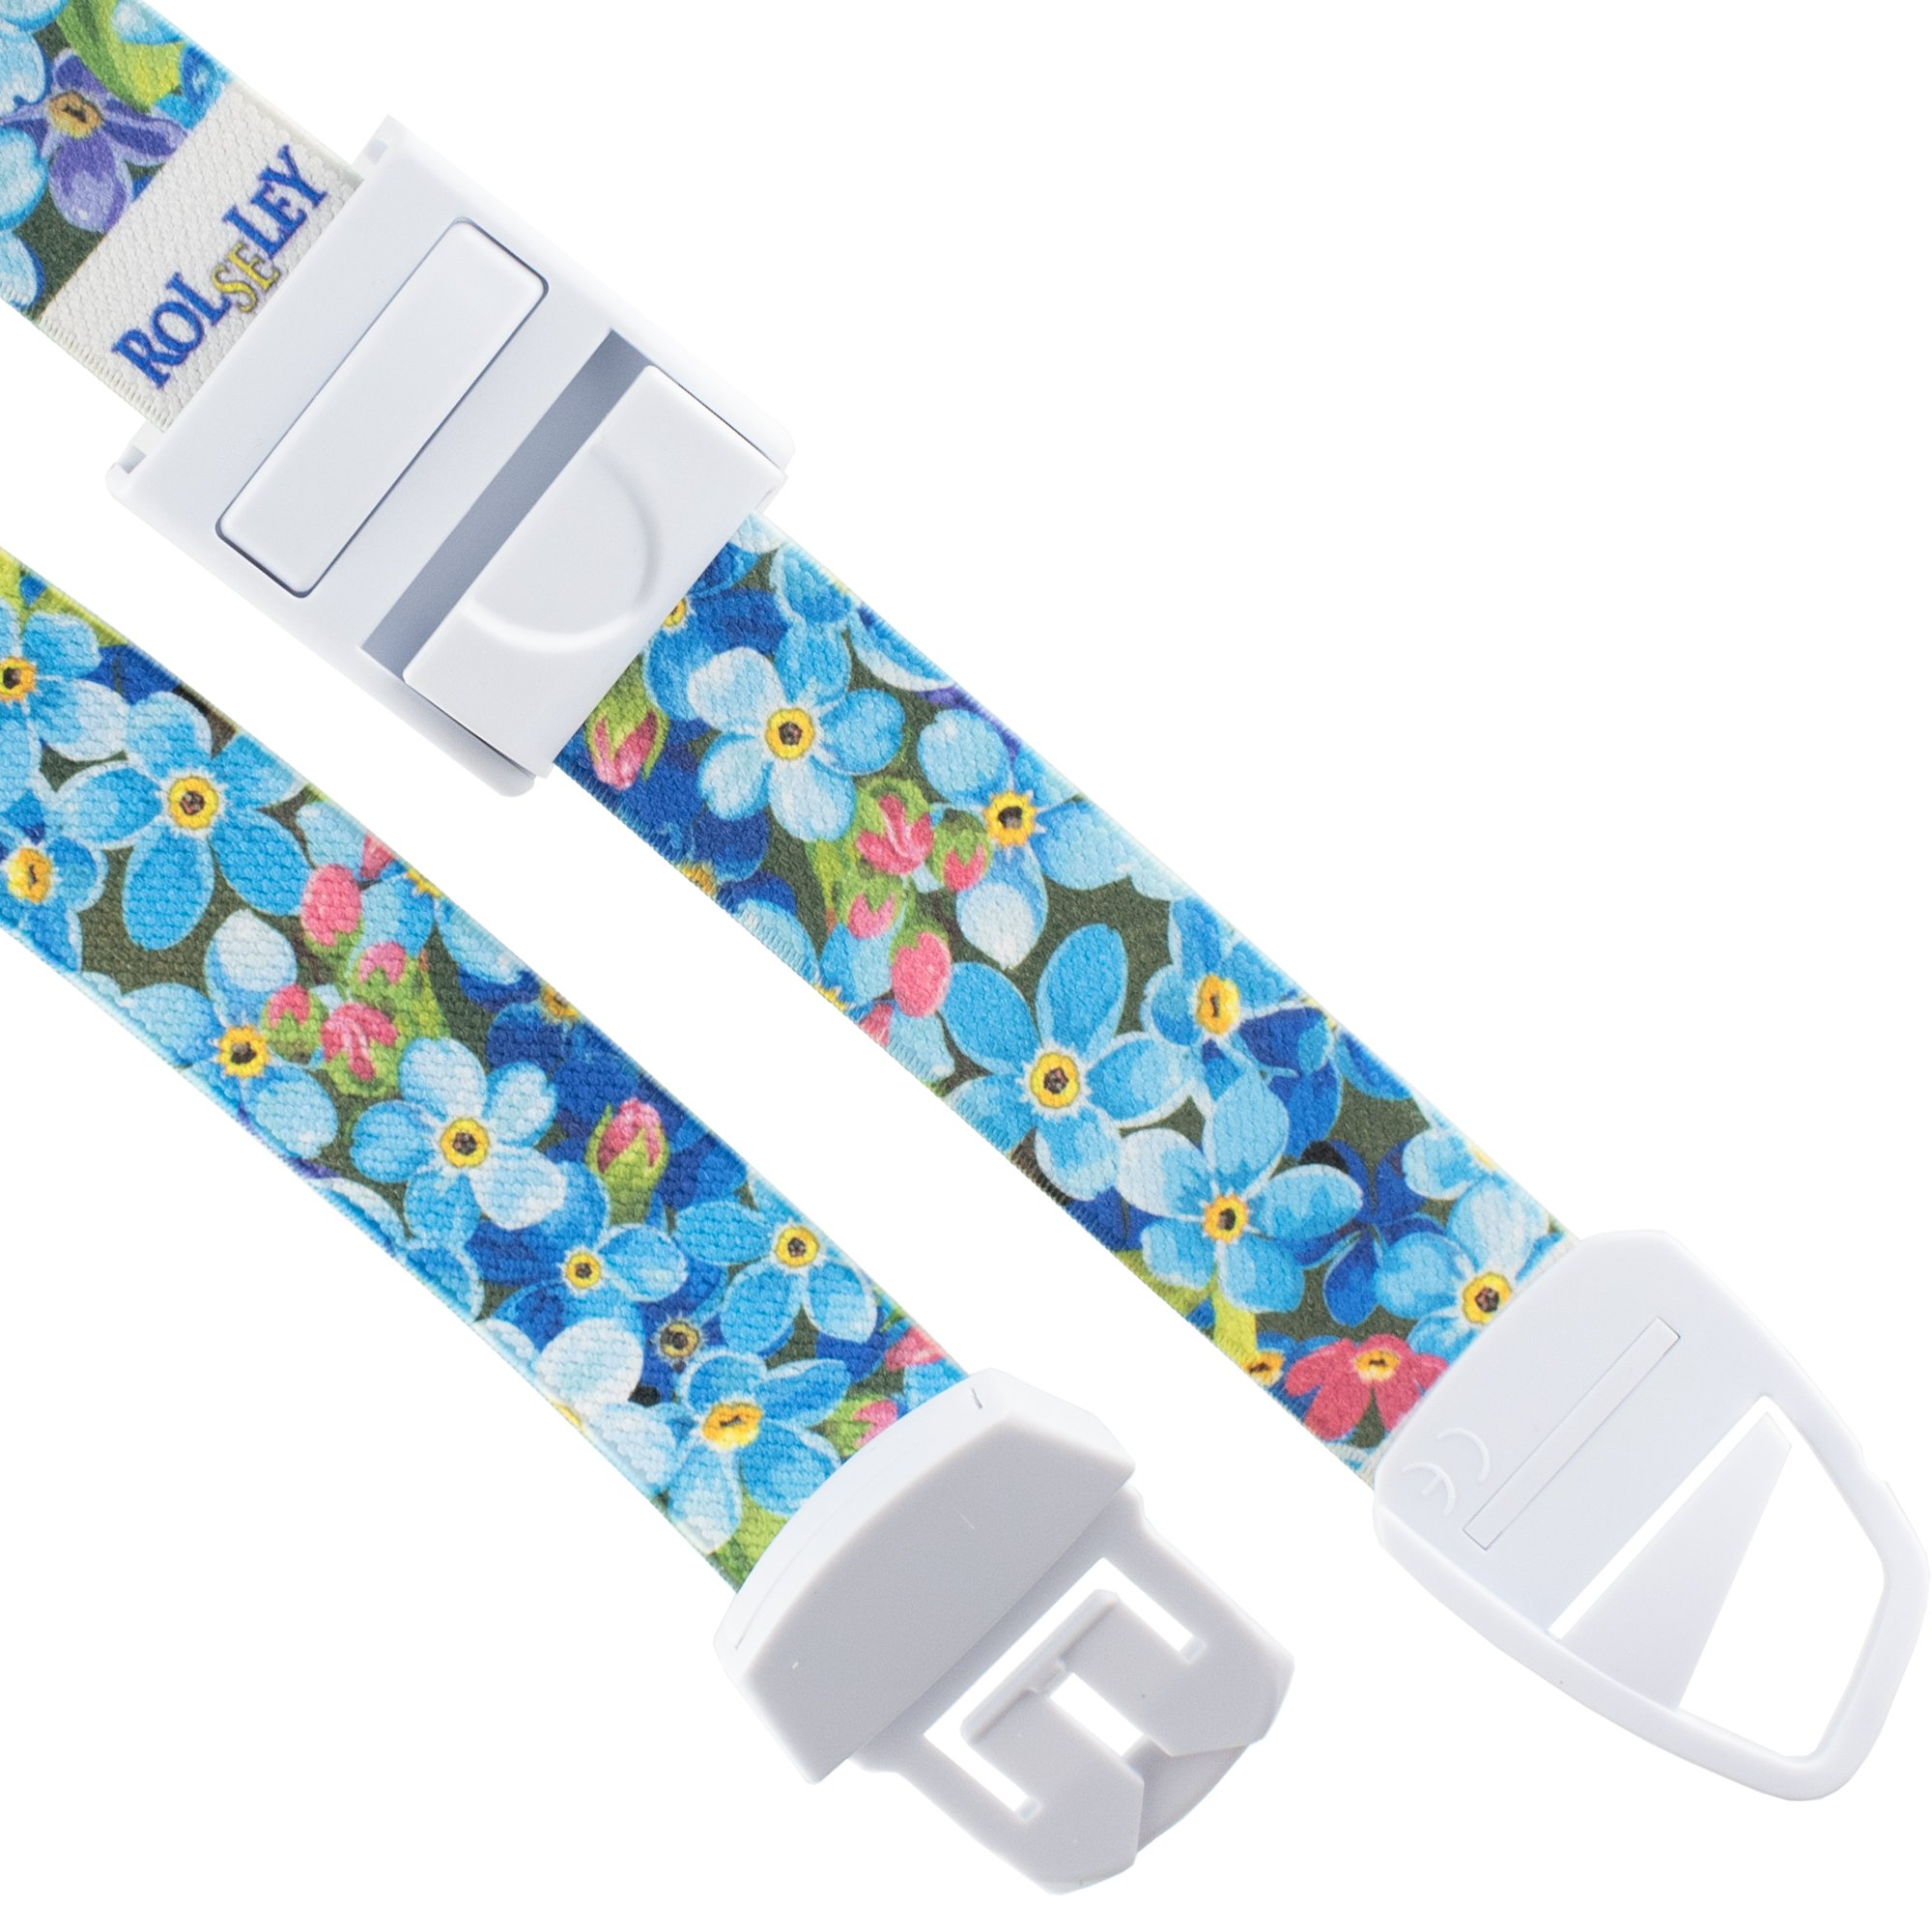 ROLSELEY PROFESIONAL Quick and Slow Release Medical Nurse Tourniquet with FLORAL FORGET-ME-NOT Pattern